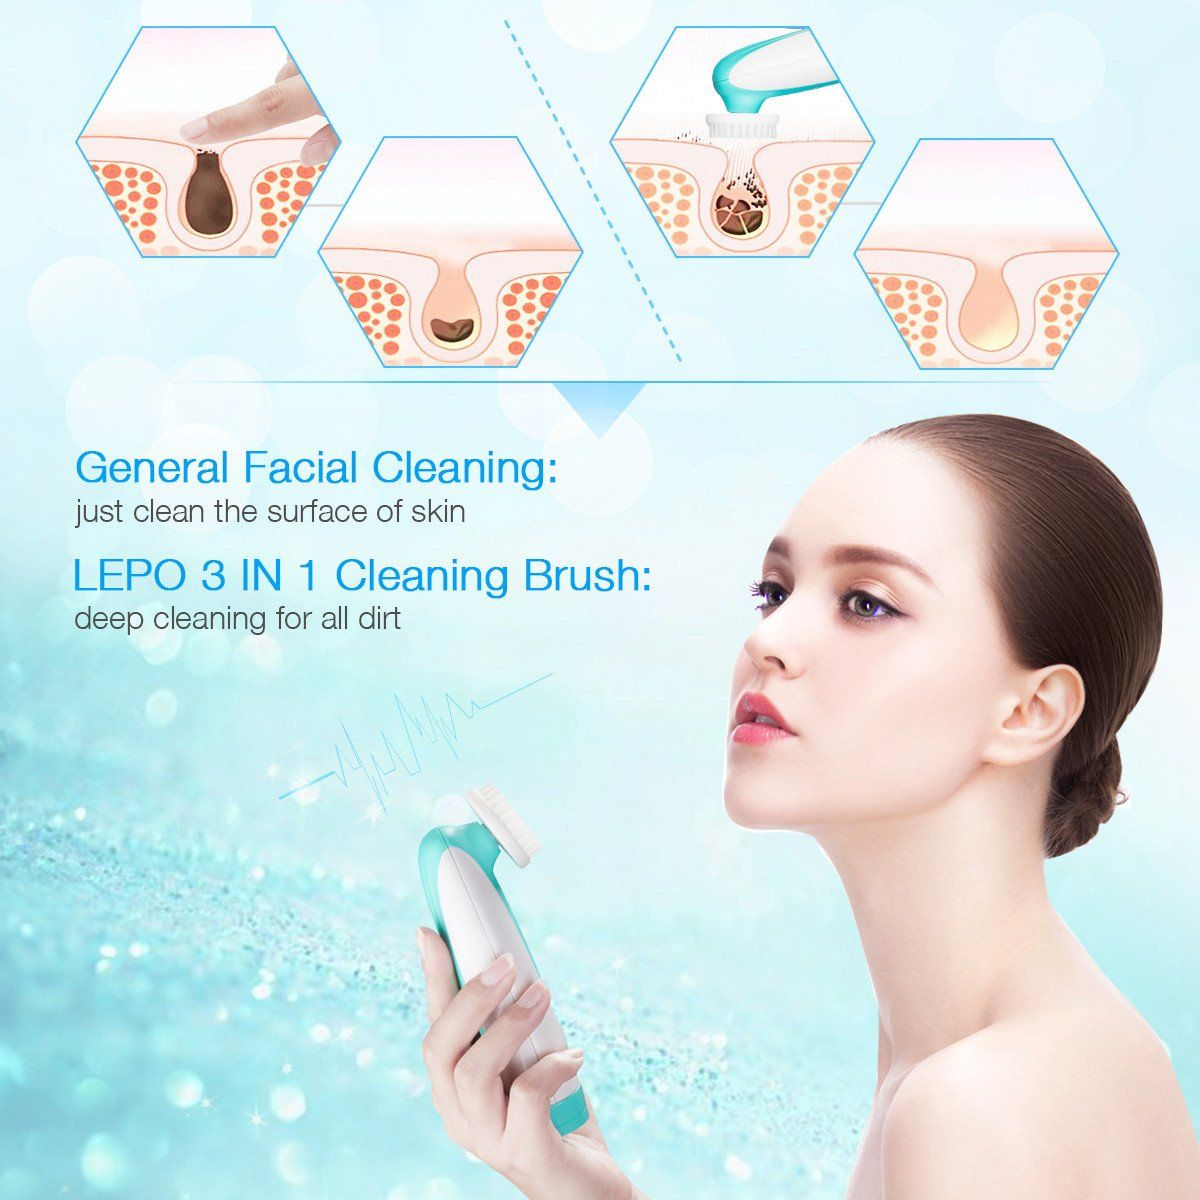 LEPO Facial Cleansing BrushWaterproof Electric Face Brush